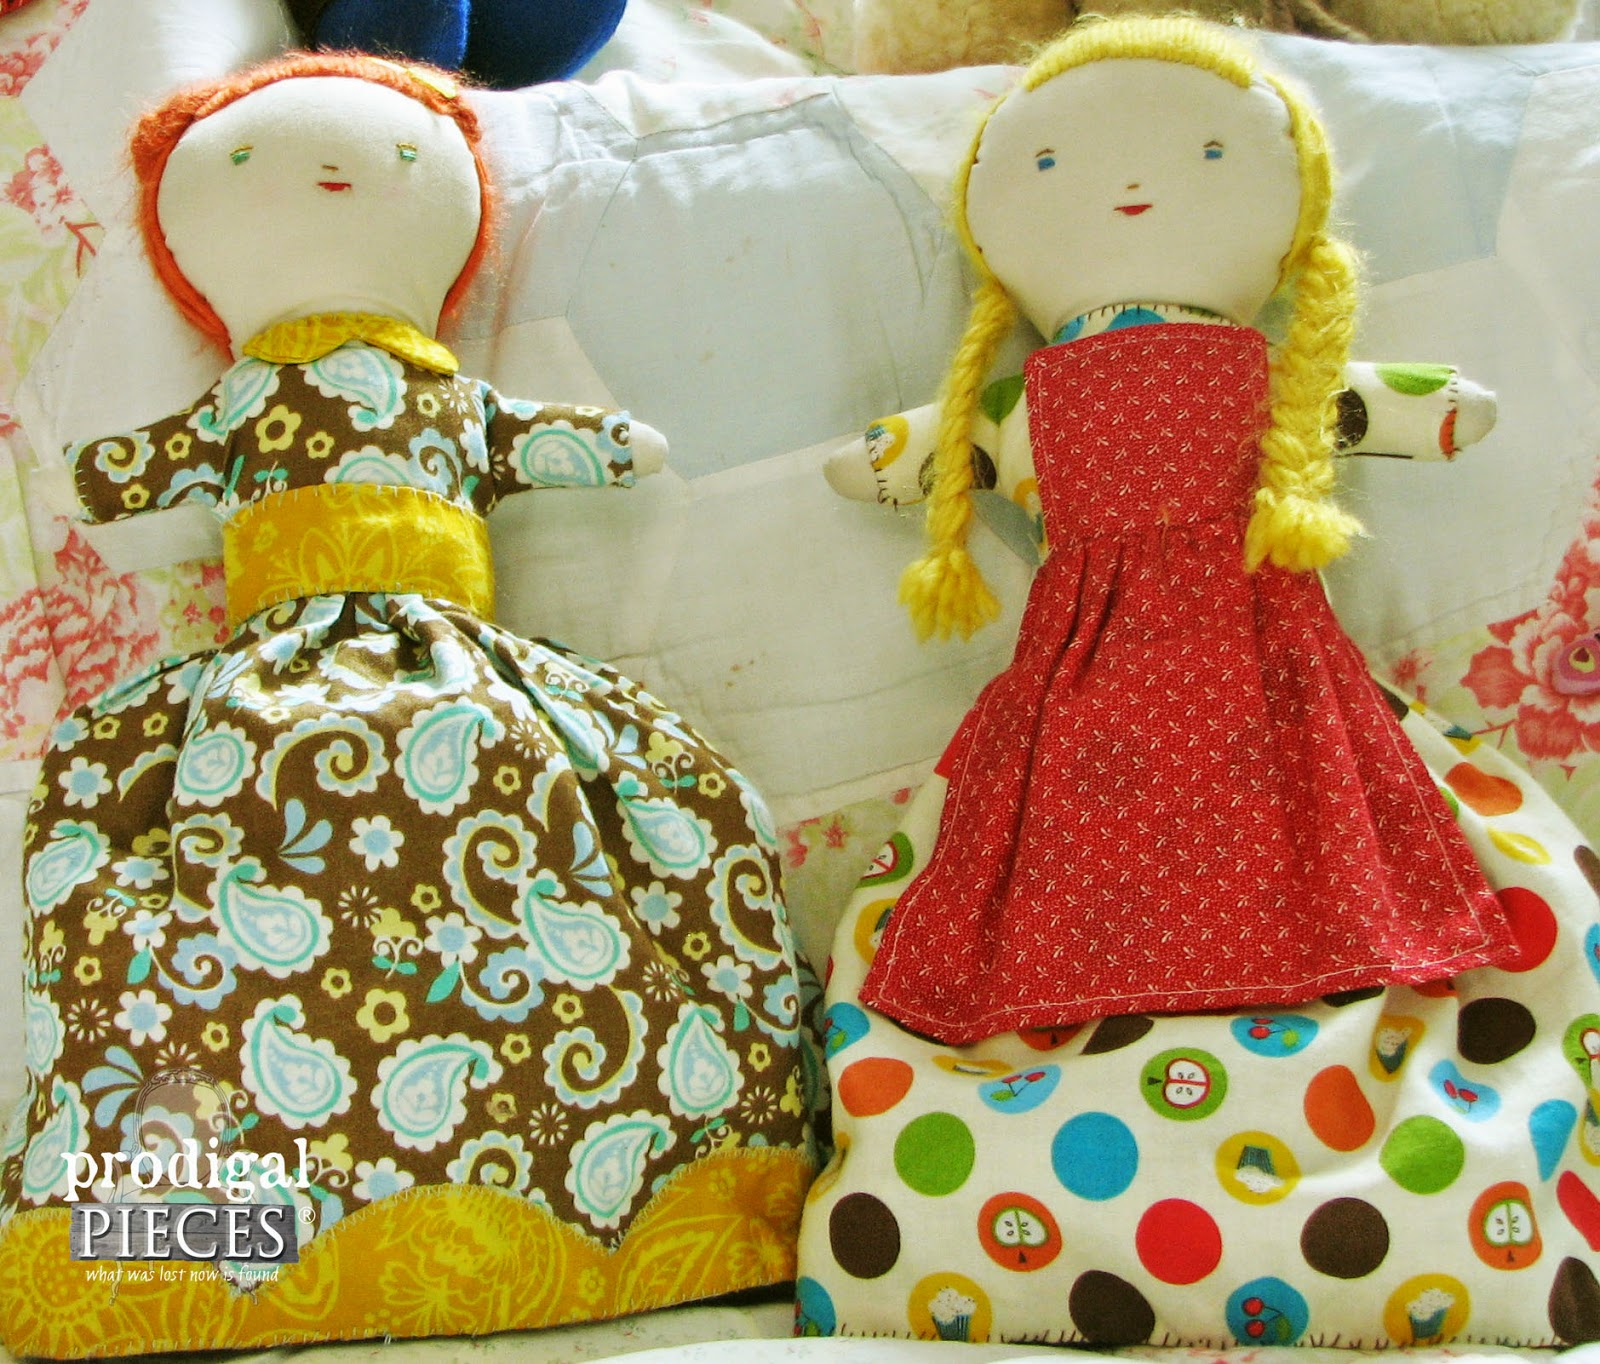 Handmade Holidays: Gift Ideas & Resources, Dolls by Prodigal Pieces www.prodigalpieces.com